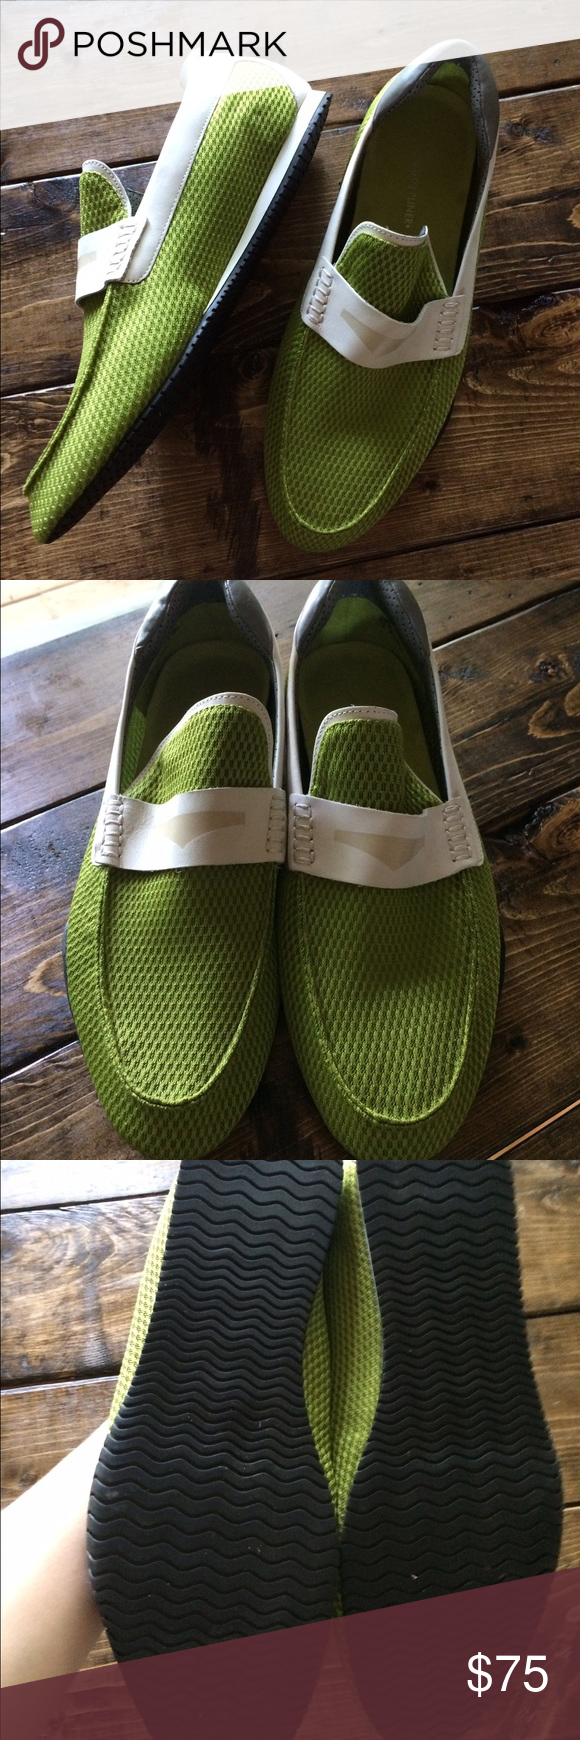 Donald J Pliner Green Dulse Mesh Loafers 11 M Like new DLP men's Dulse Green Loafers. These are perfect and lightweight! Size 11 M Donald J. Pliner Shoes Loafers & Slip-Ons